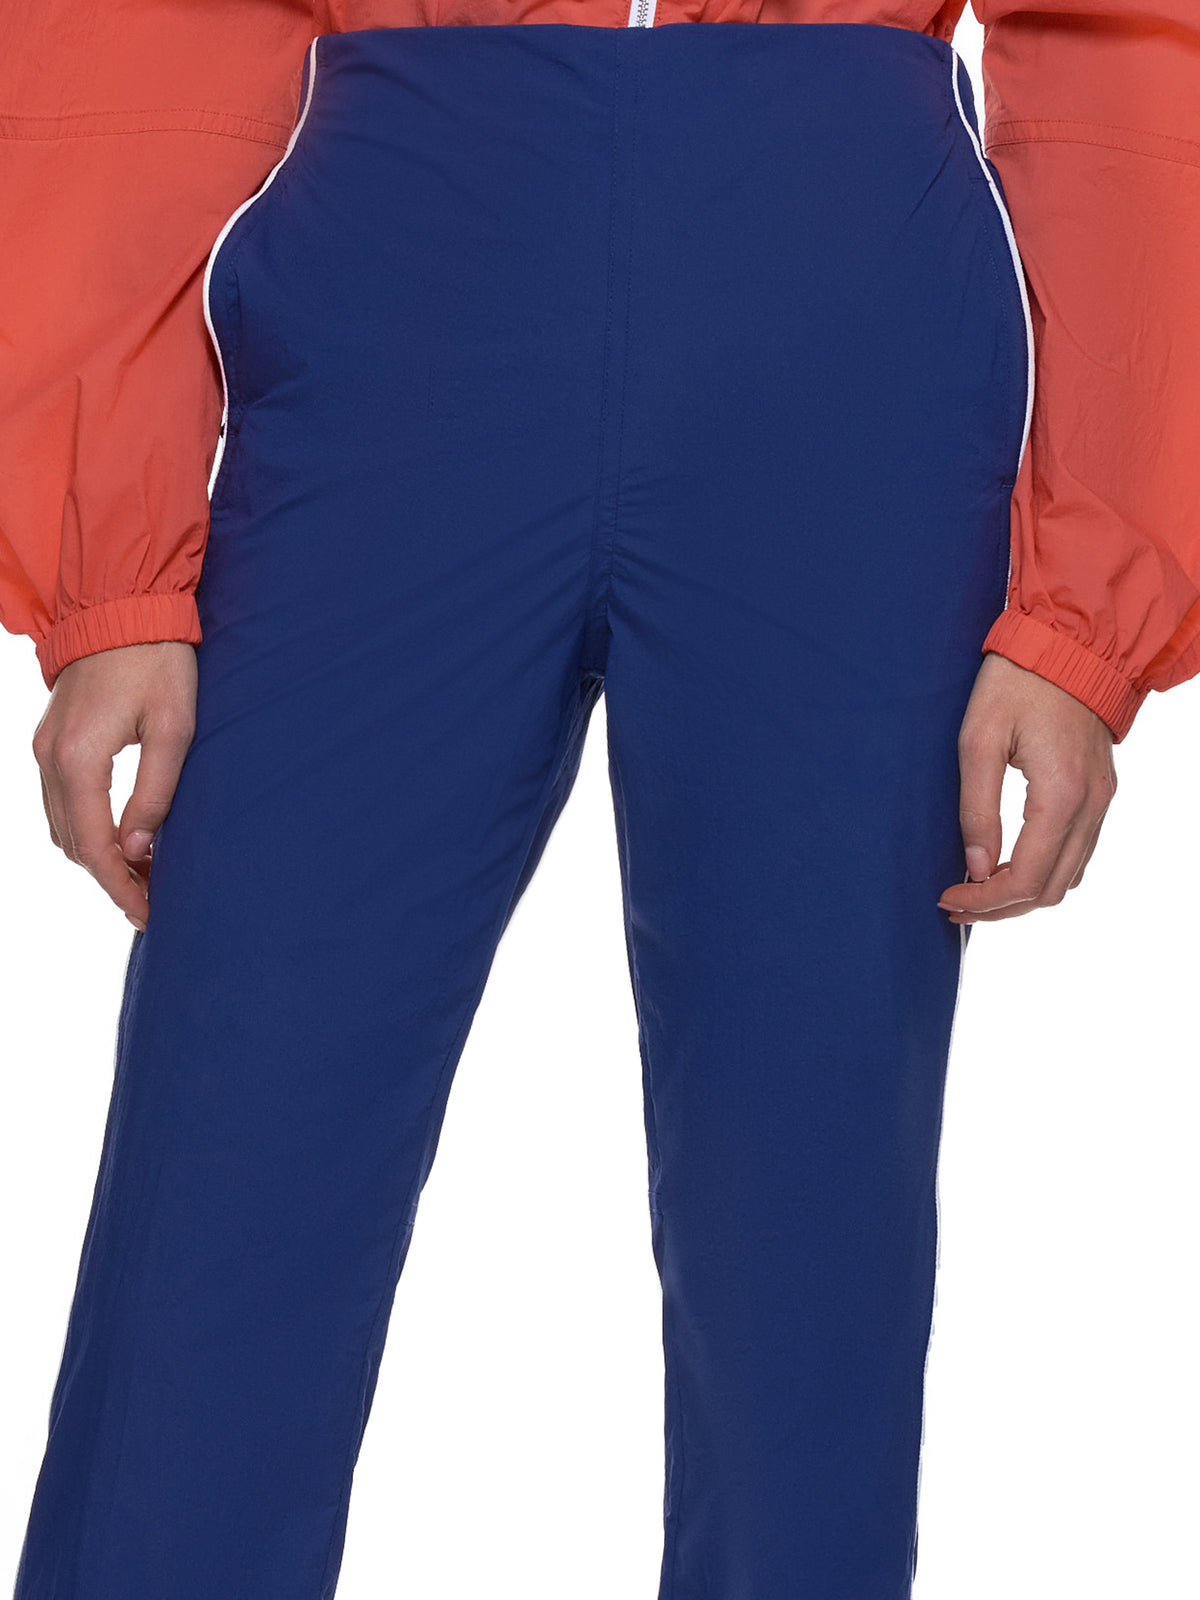 Athletic Trousers (4-2-BLUE)